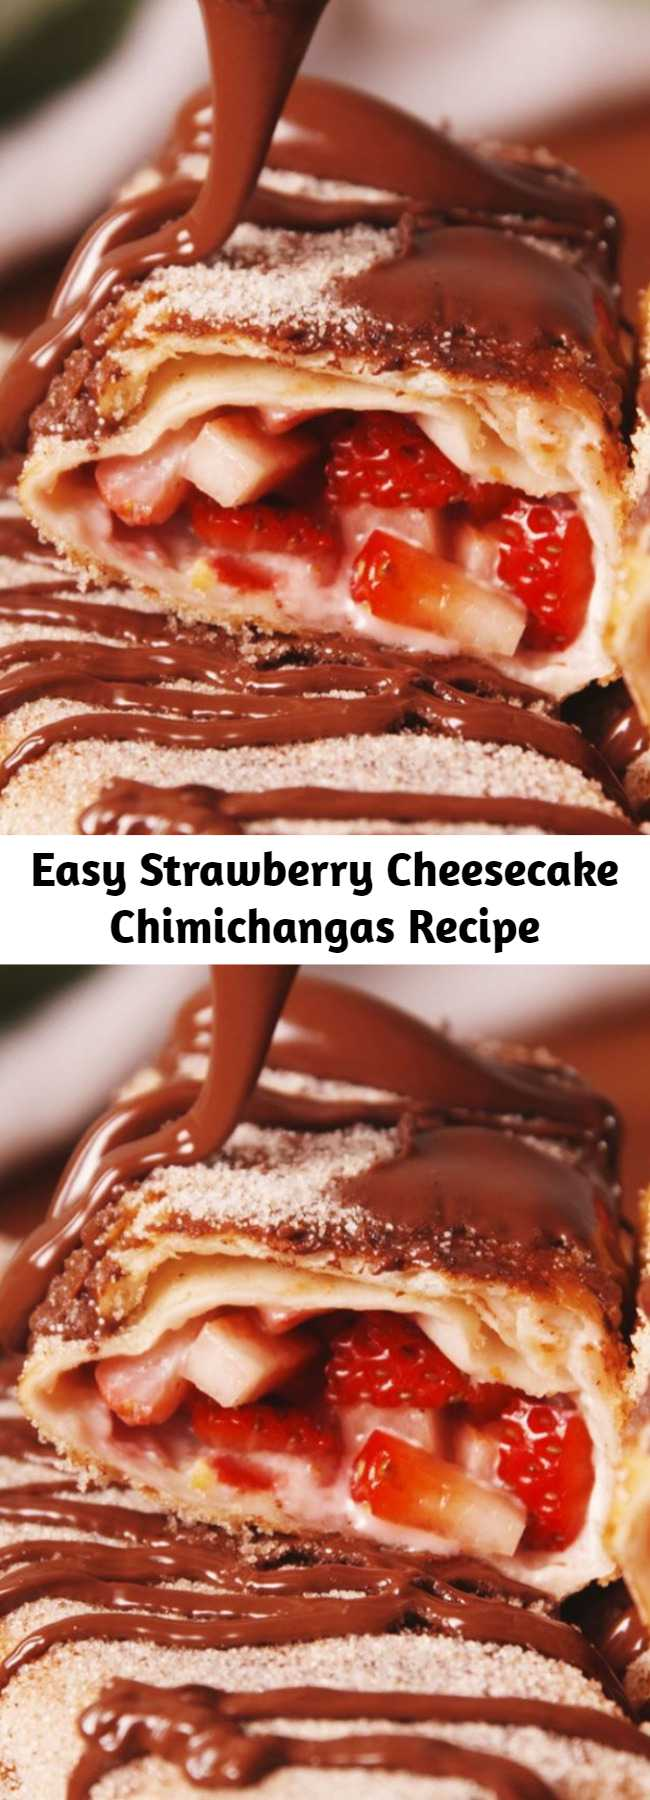 Easy Strawberry Cheesecake Chimichangas Recipe - Check out this easy recipe for the best strawberry cheesecake chimichangas! Our new favorite way to eat cheesecake.